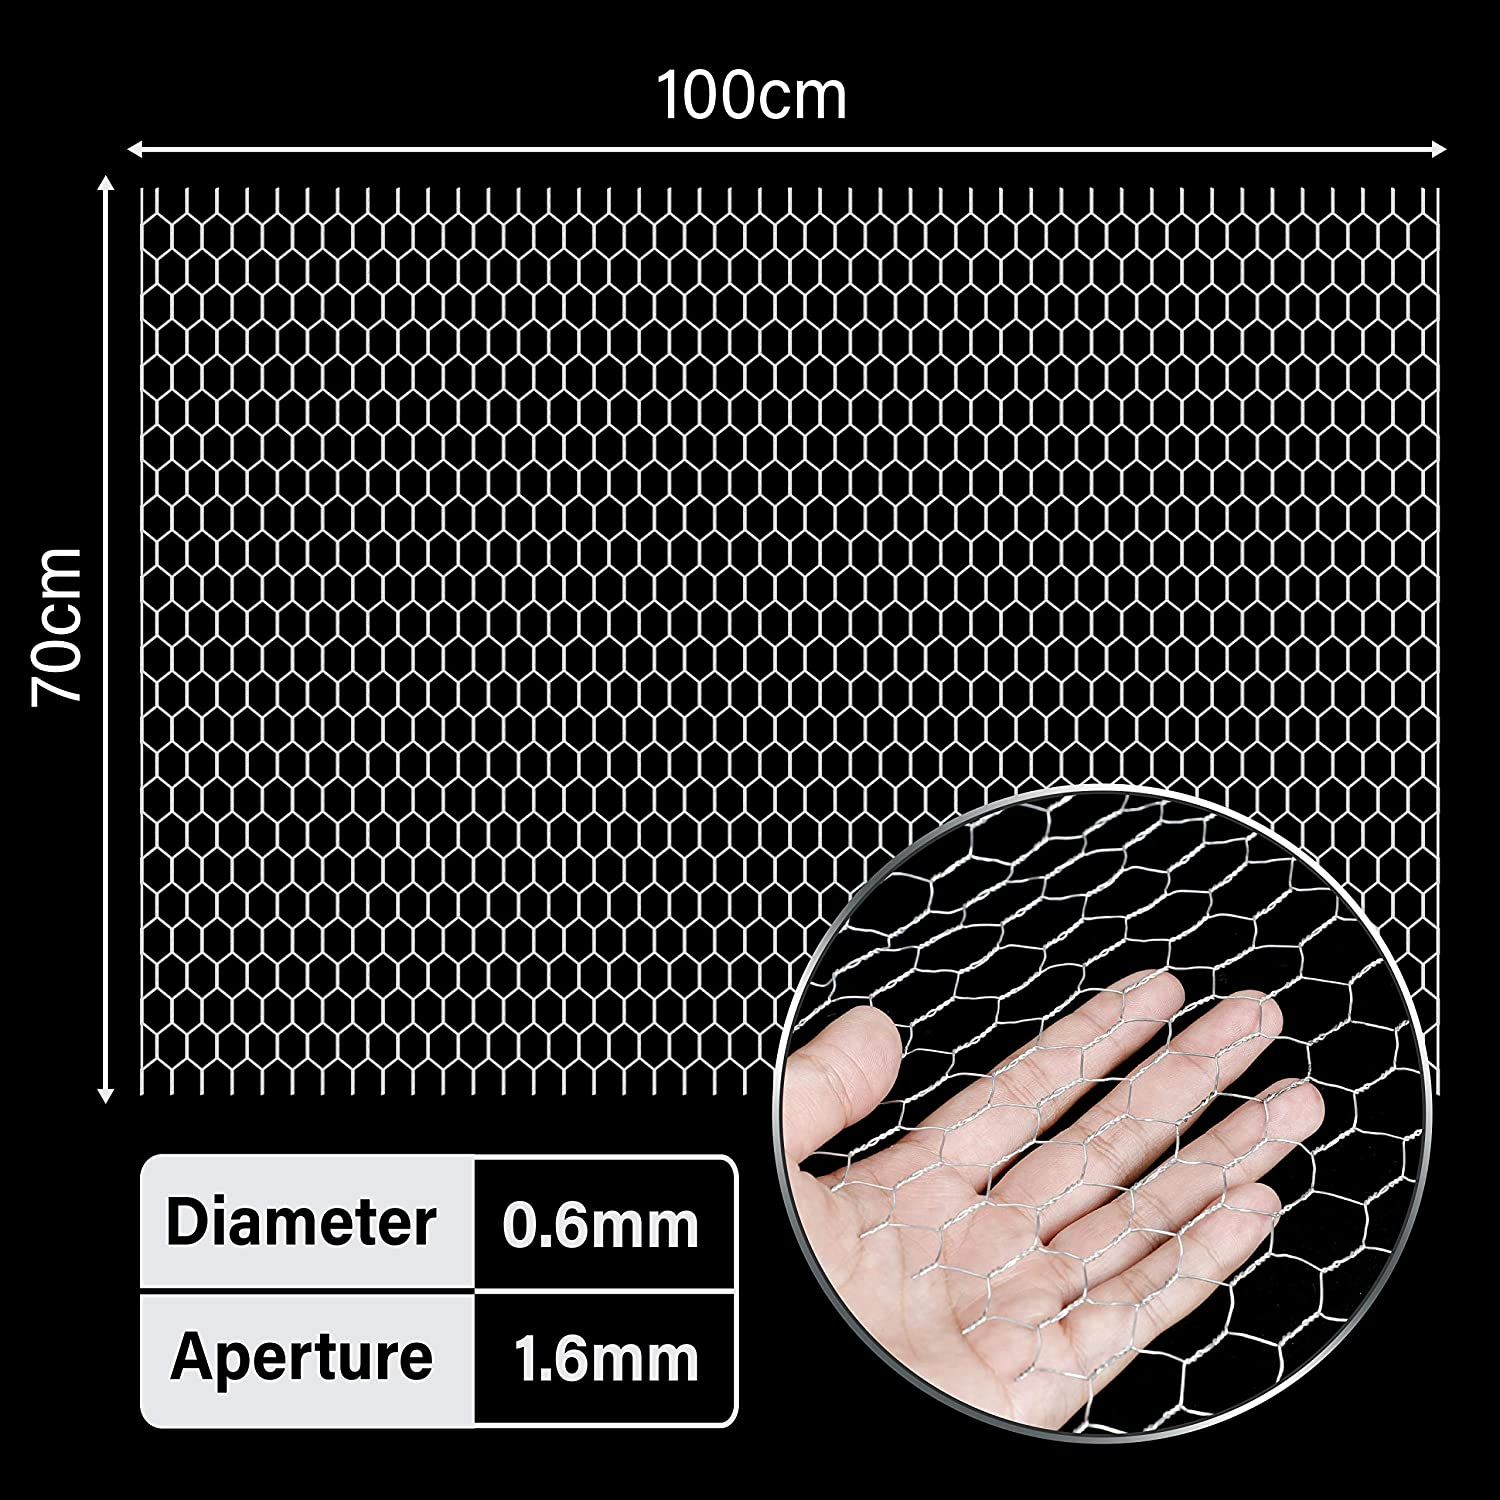 Chicken Wire Frame for Crafts Floral Netting 70 x 100 cm for Gardening Chicken Wire Fence Galvanized Hexagonal Fencing Wire 27.5 x 39.3 inch Poultry Fencing